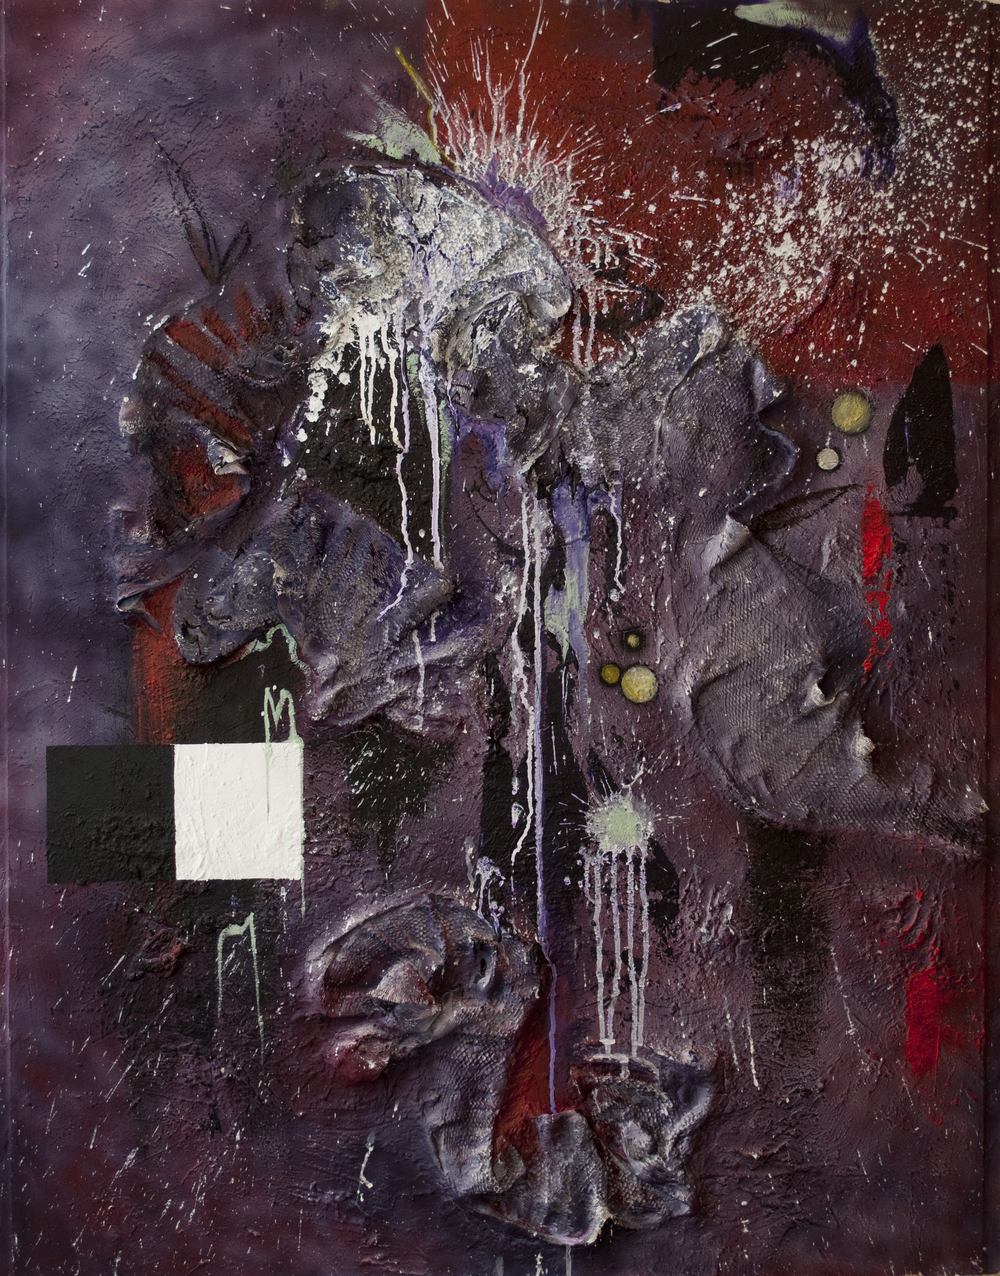 Purple    |    Acrylic, oil, and mixed media on Masonite board    |    39x49""